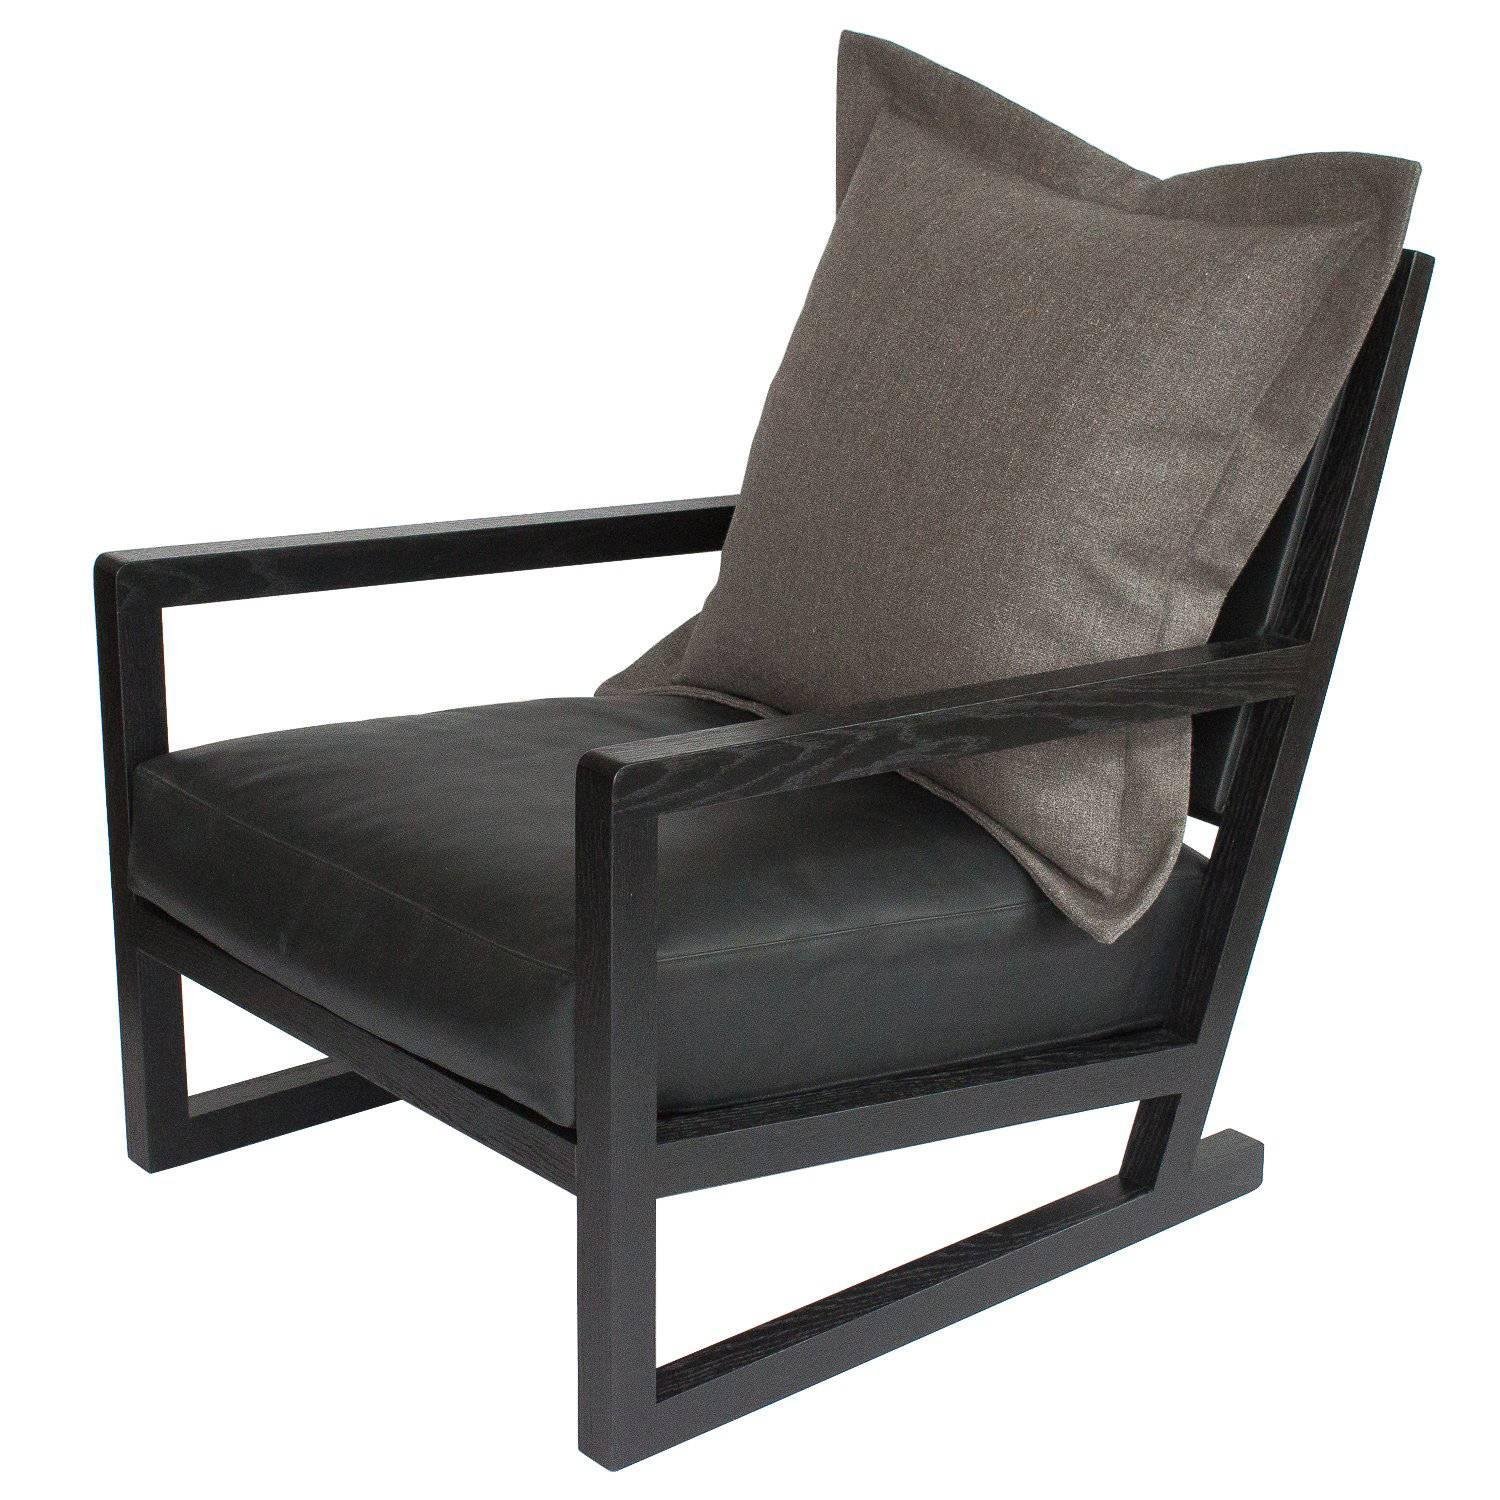 Antonio Citterio Clio Lounge Chair for B&B Italia Maxalto For